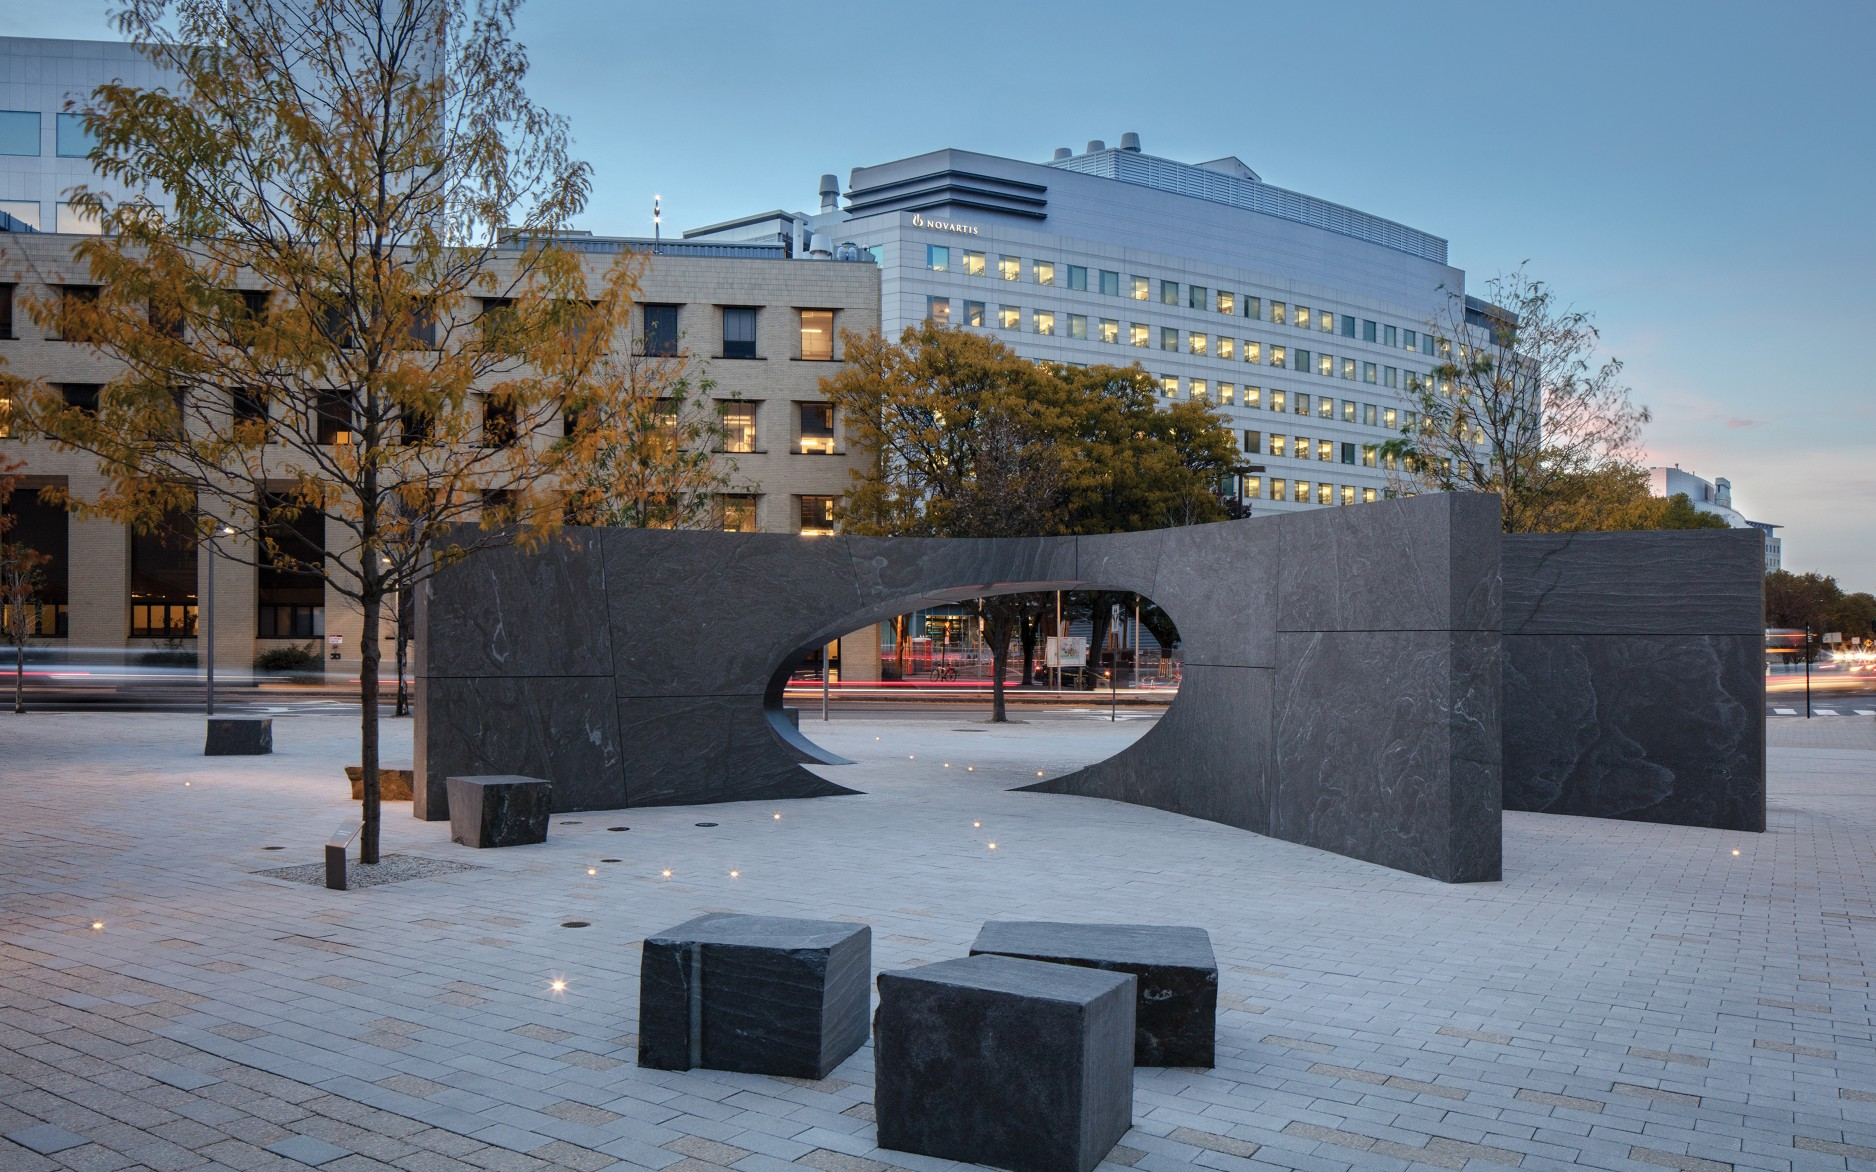 Designed by J. Meejin Yoon, the memorial embodies strength through unity, with 32 interlocking blocks of granite.